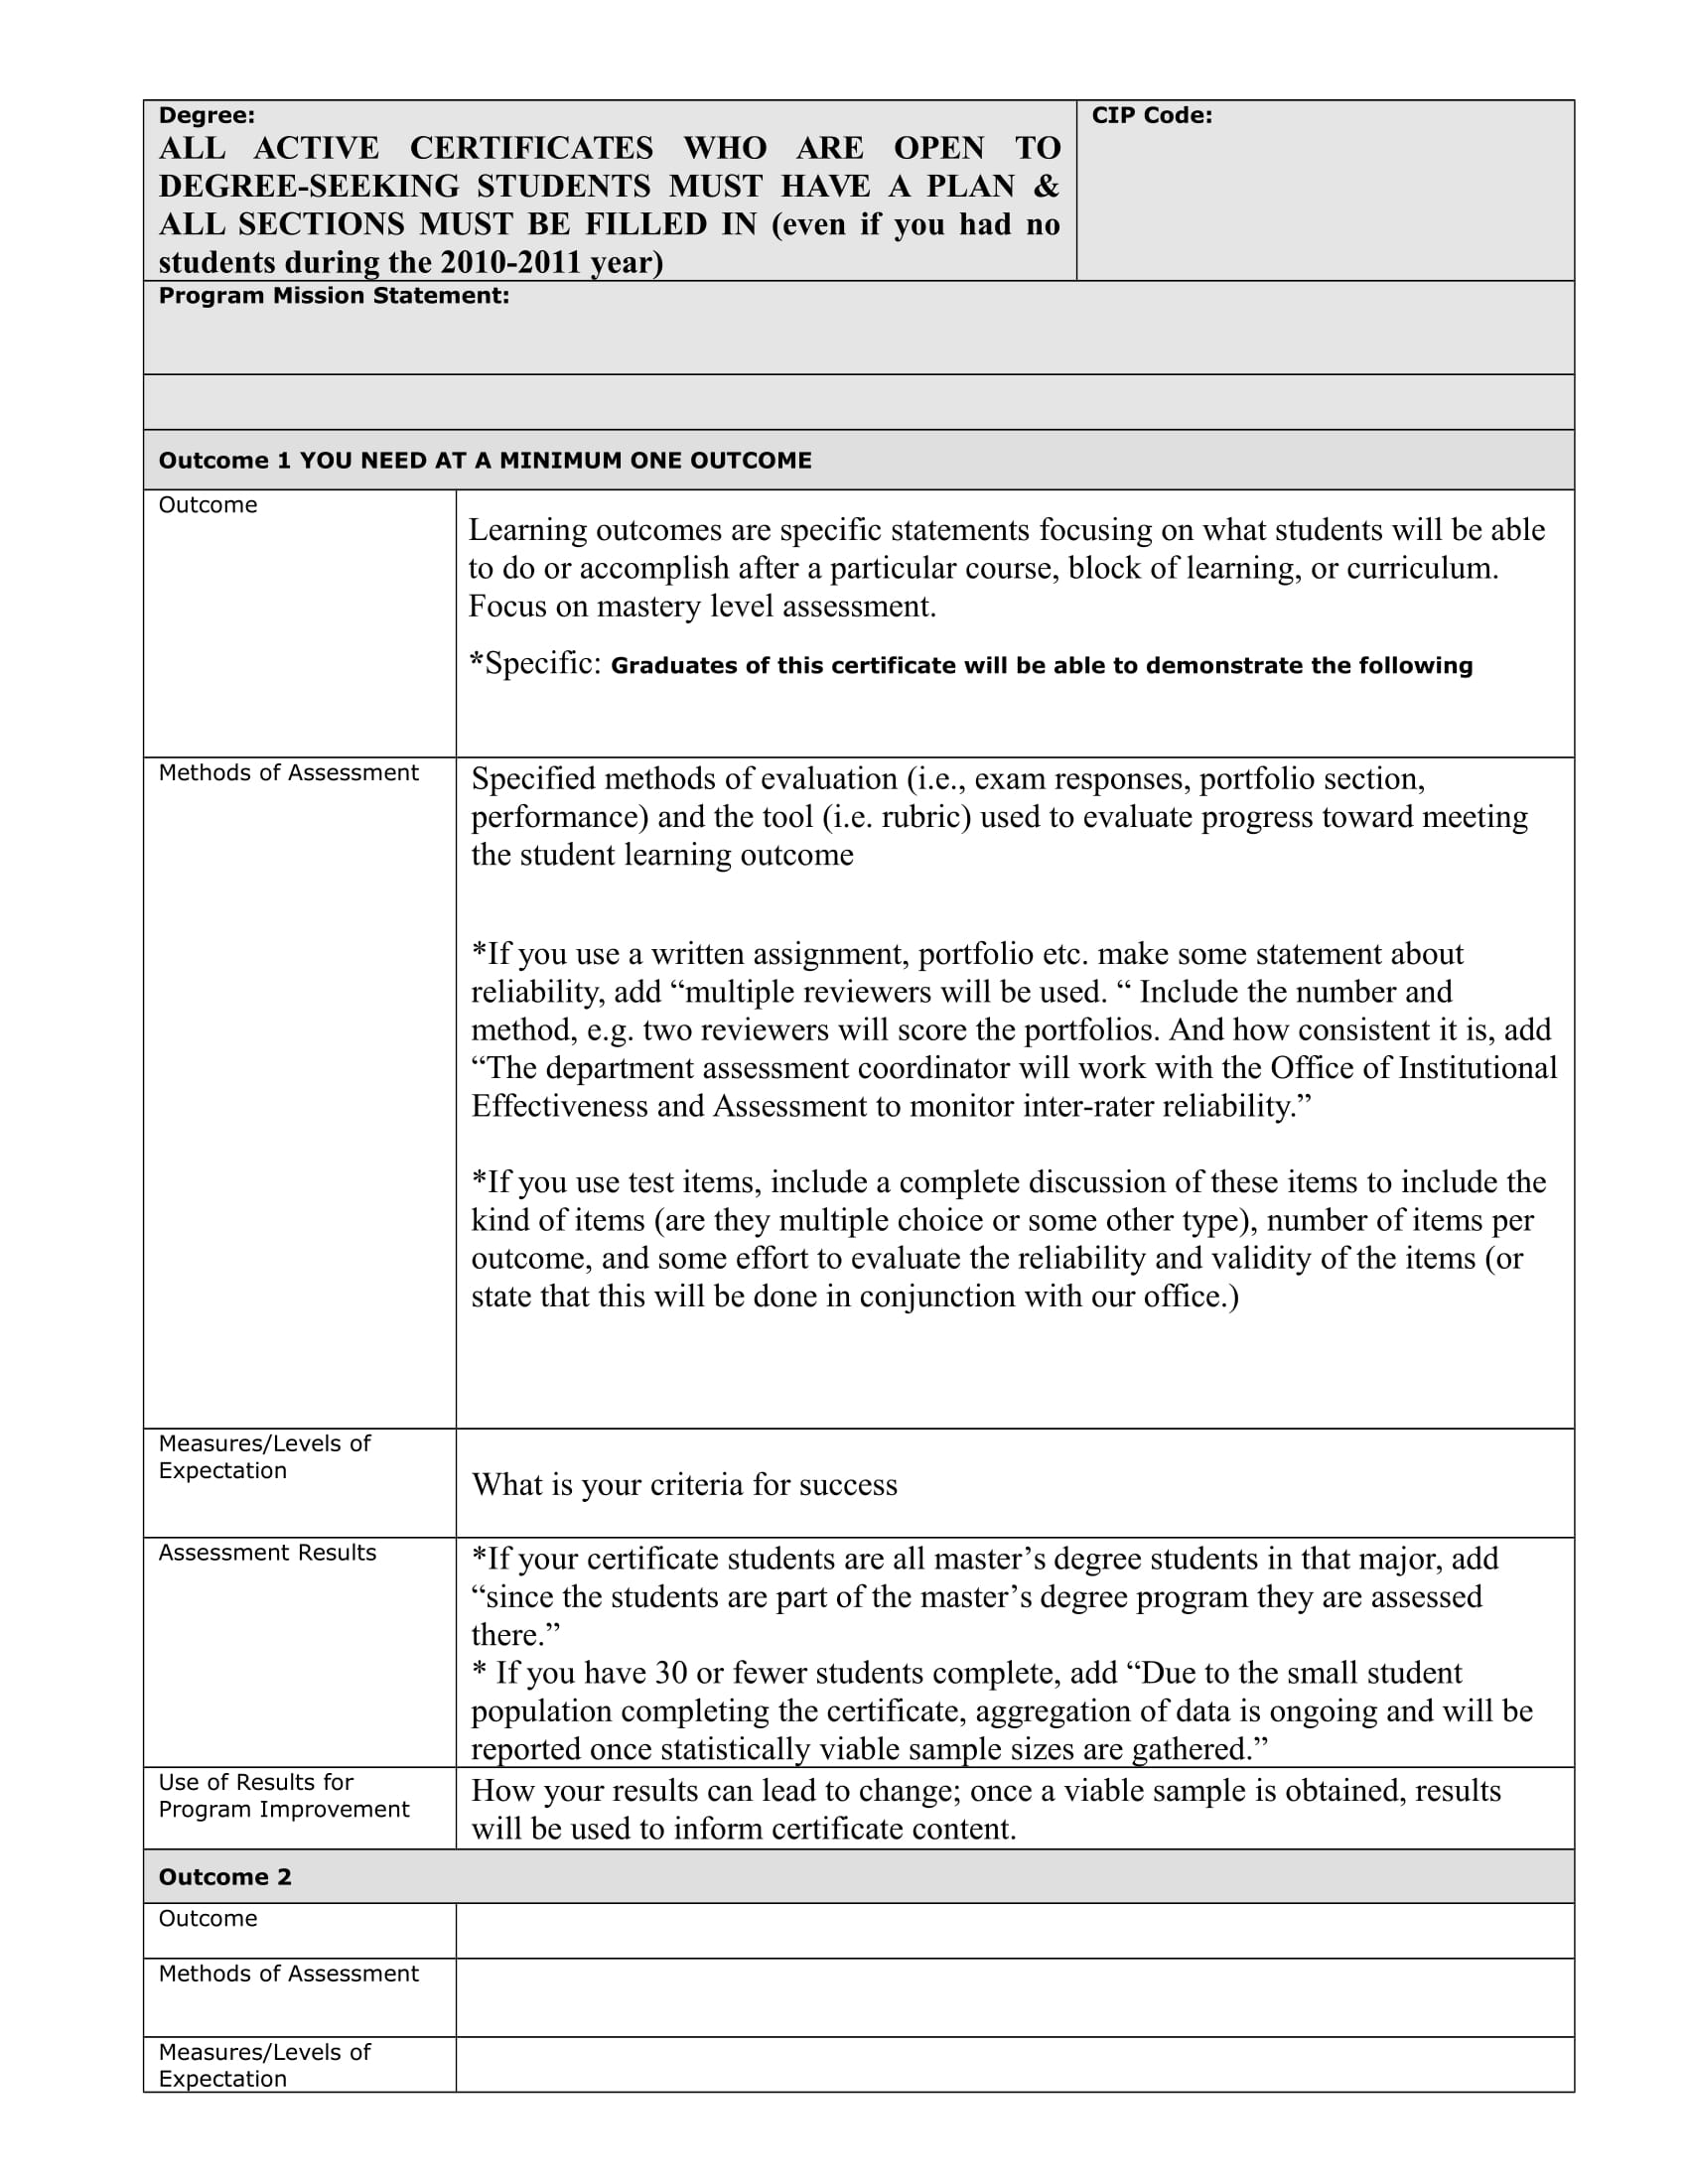 certification program assessment plan template example 2